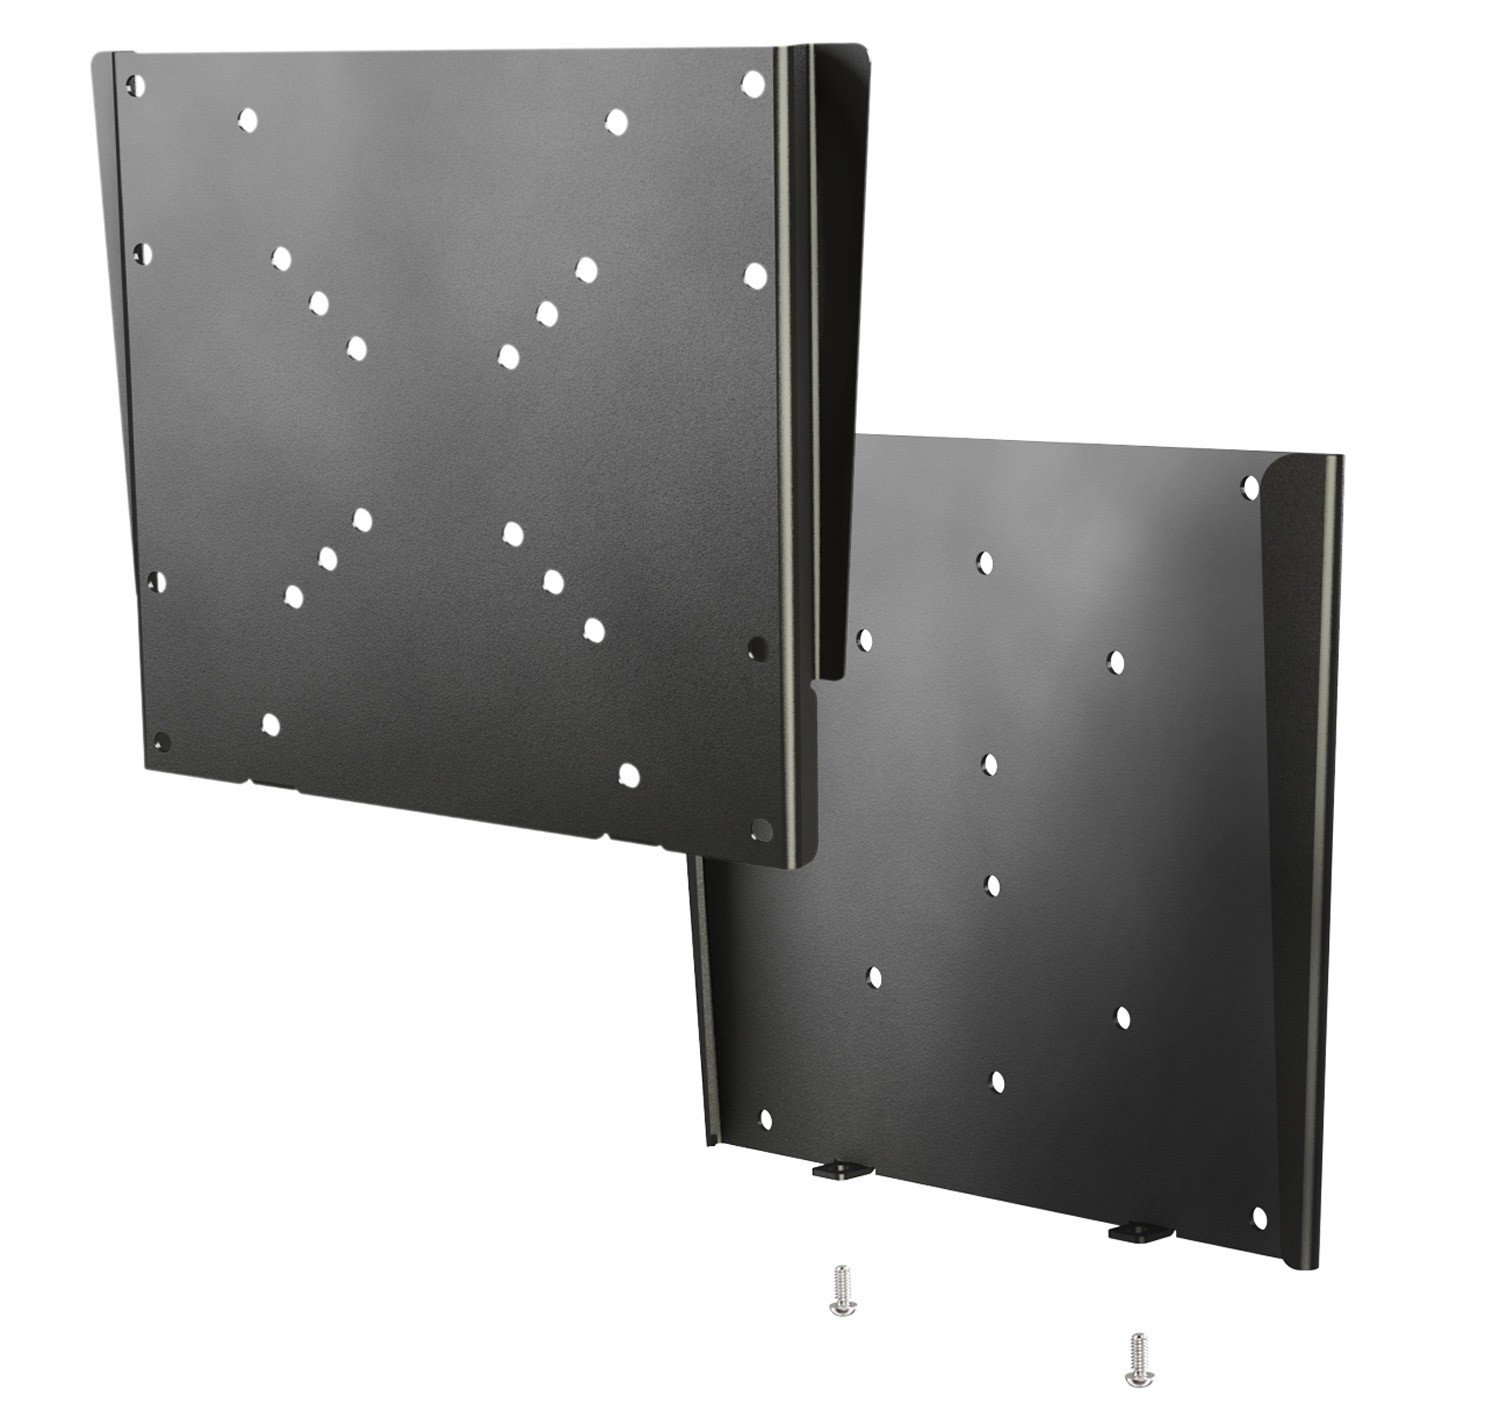 RICOO TV Wall Bracket Ultra Super Slim Flat F0522 Amazon